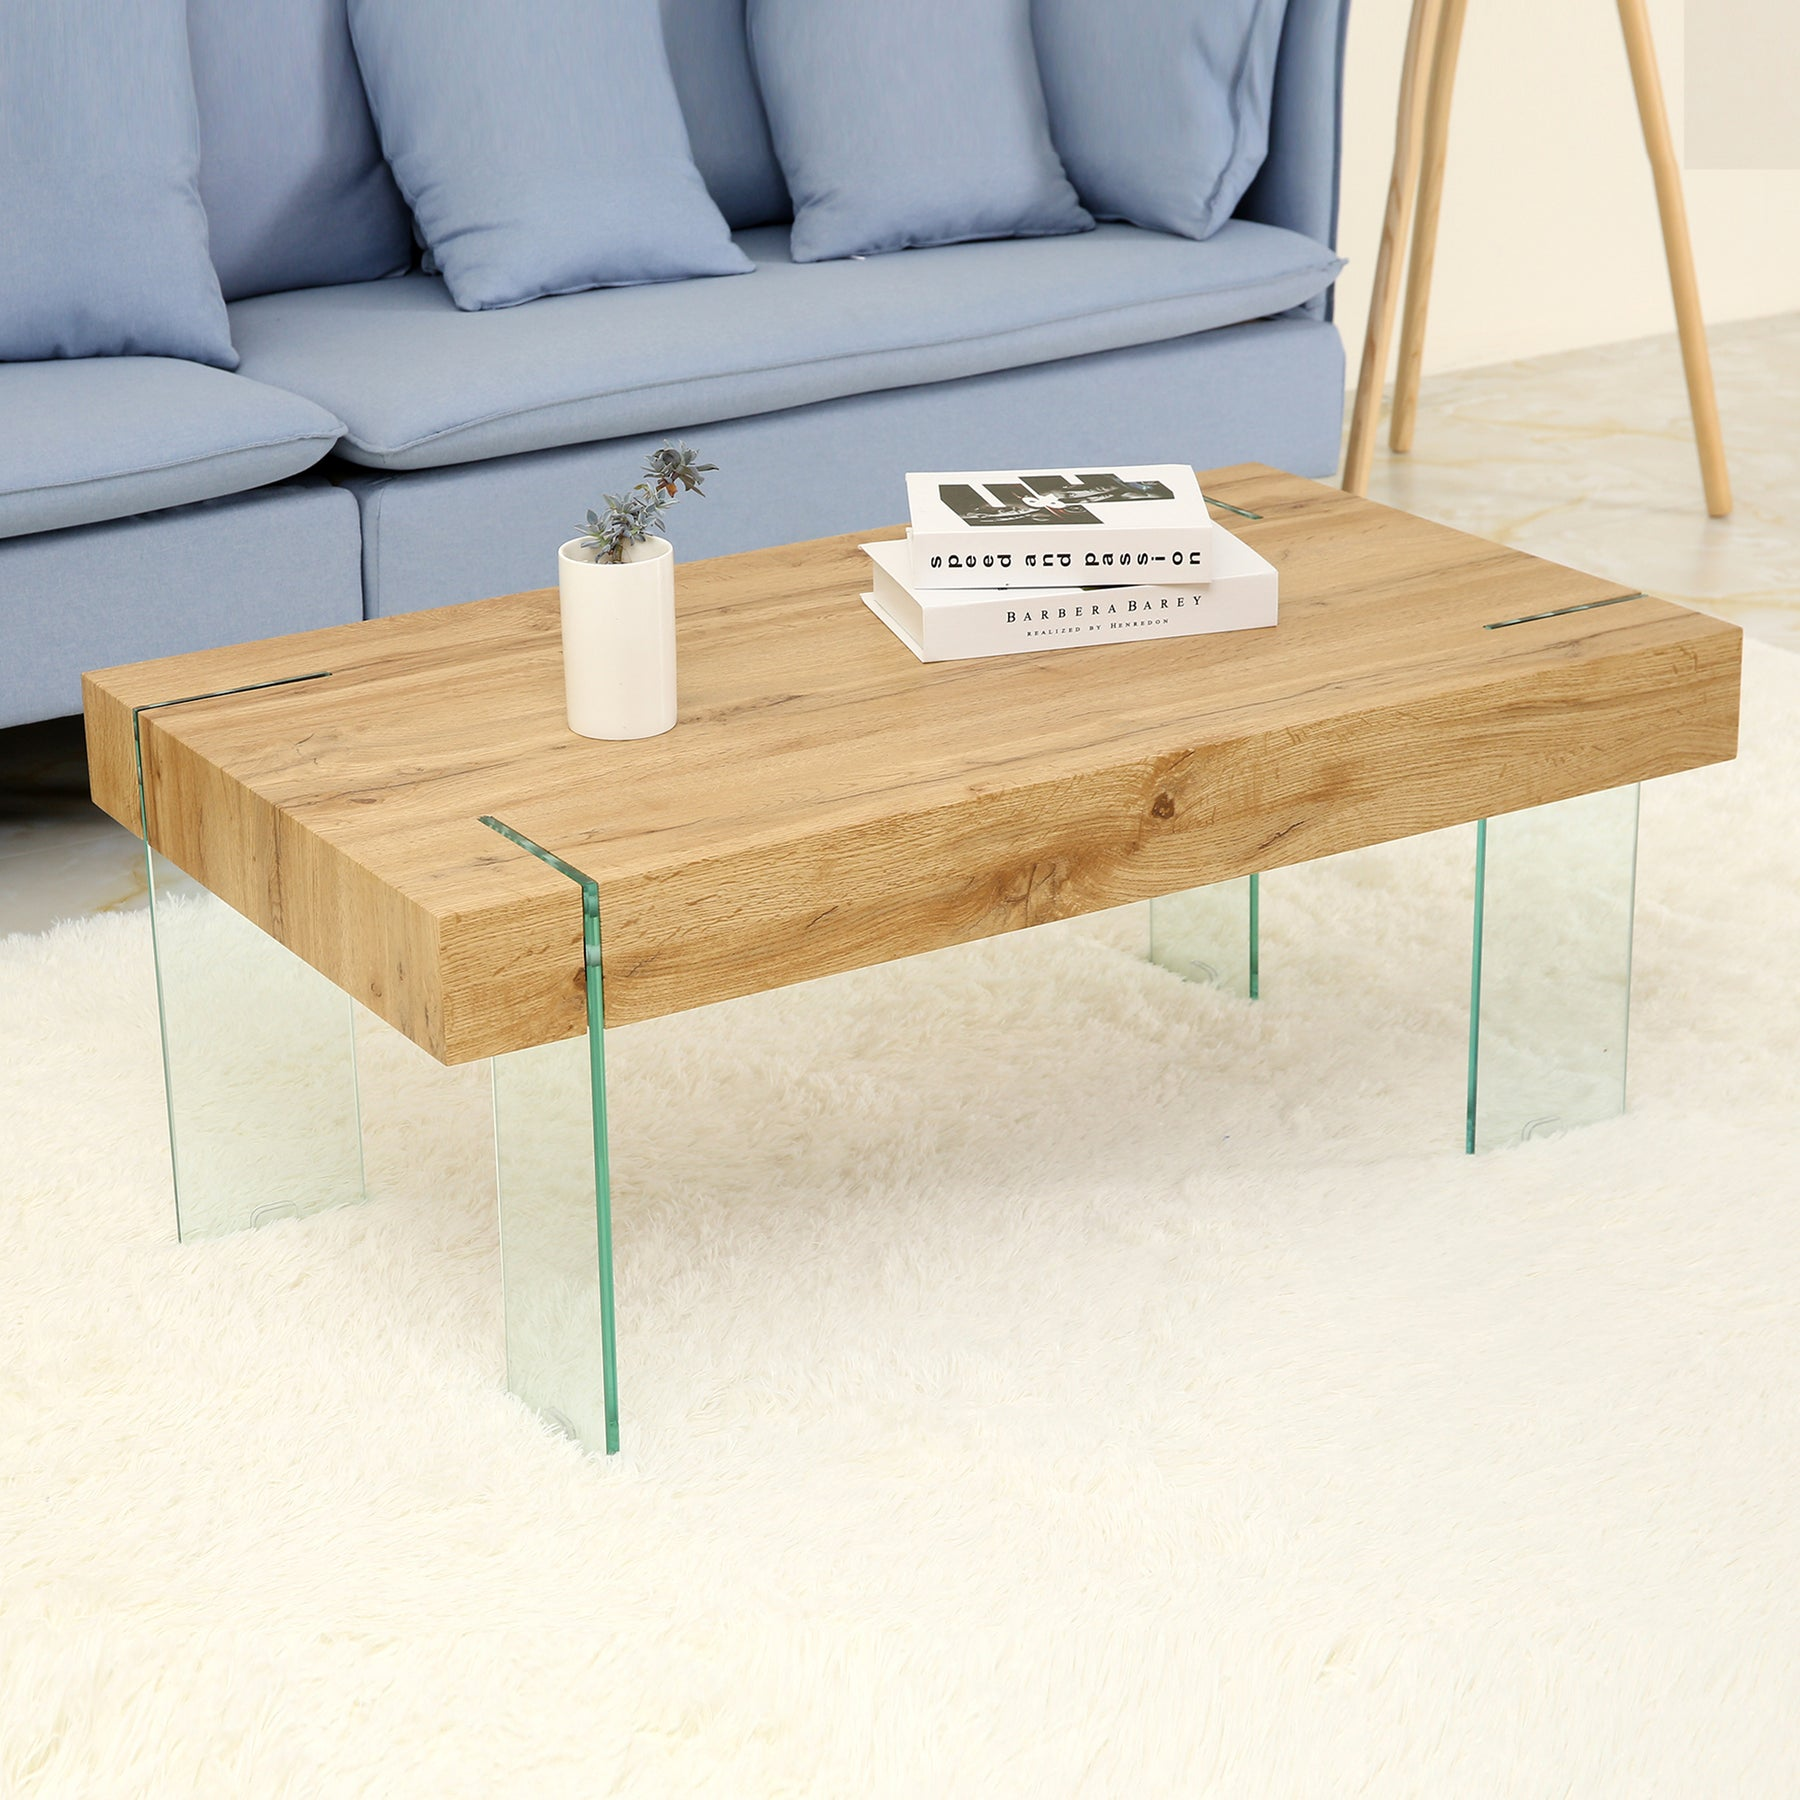 Miraculous Mcombo Modern Mid Century Glass Rectangular Coffee Table For Living Room Modern Accent Table Sofa Table 42X24X17 6090 Float Ct Machost Co Dining Chair Design Ideas Machostcouk